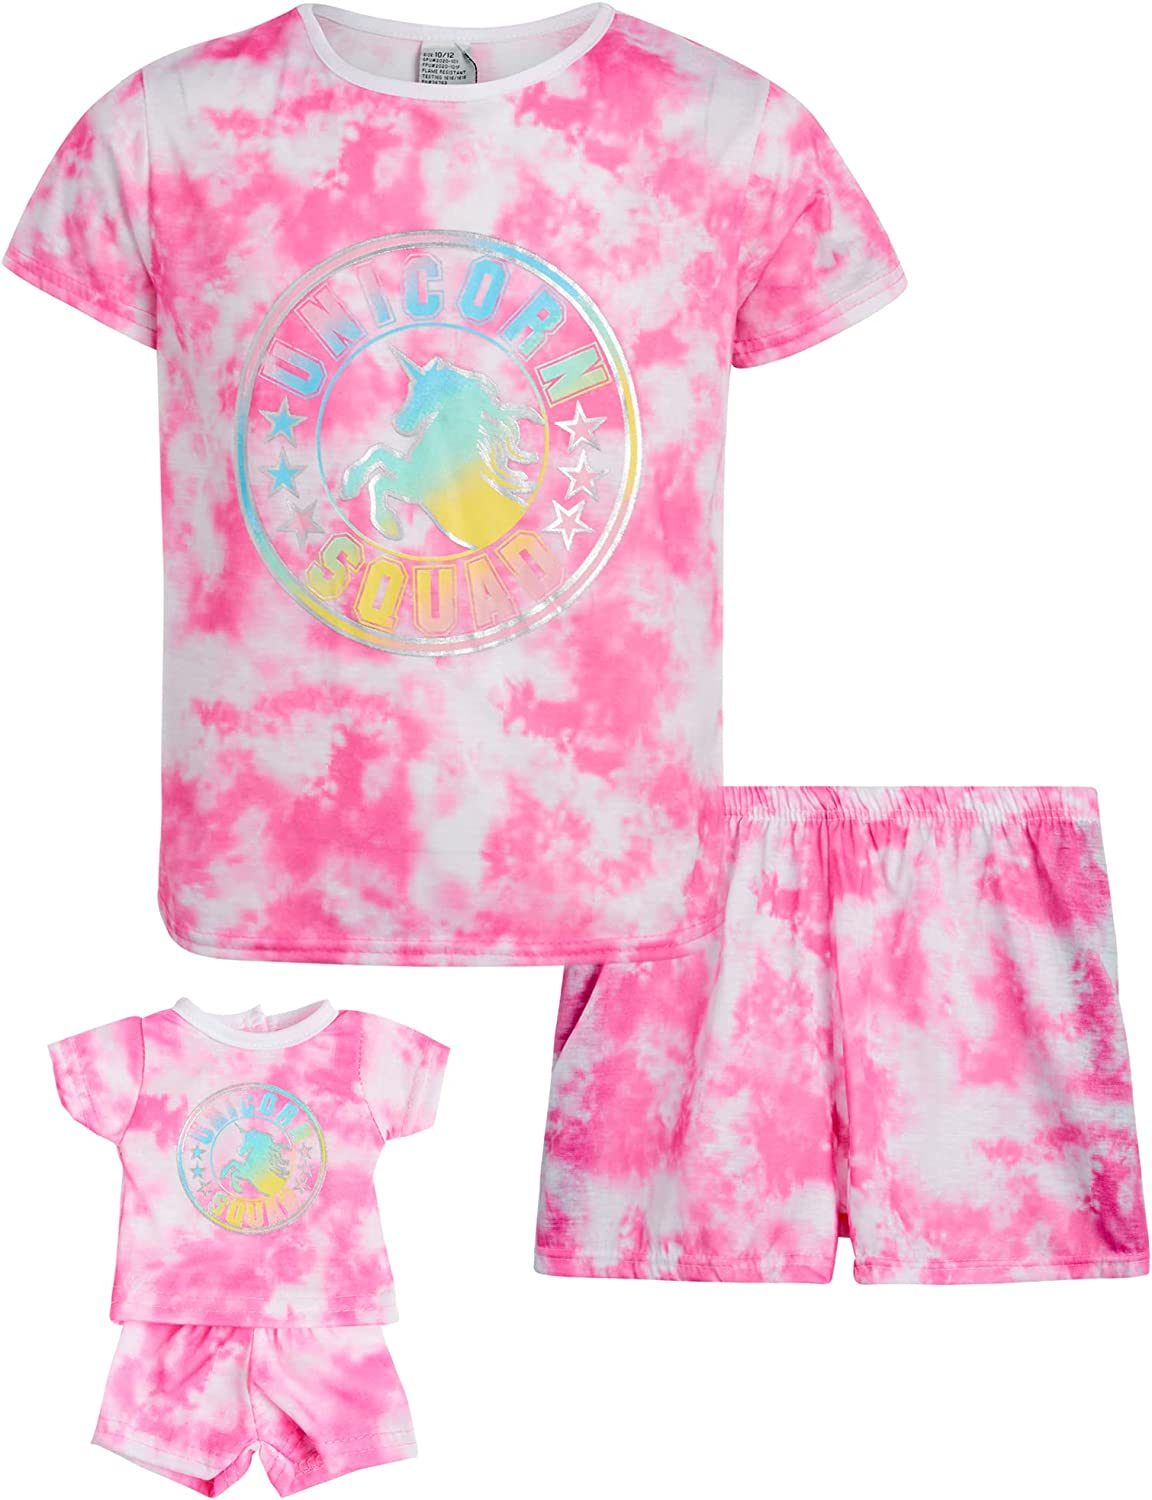 BFF & Me Girls' Pajama Set - 2 Piece T-Shirt and Sleep Shorts with Matching Doll Nightgown, Size S(6/6X), Pink Tie Dye Squad